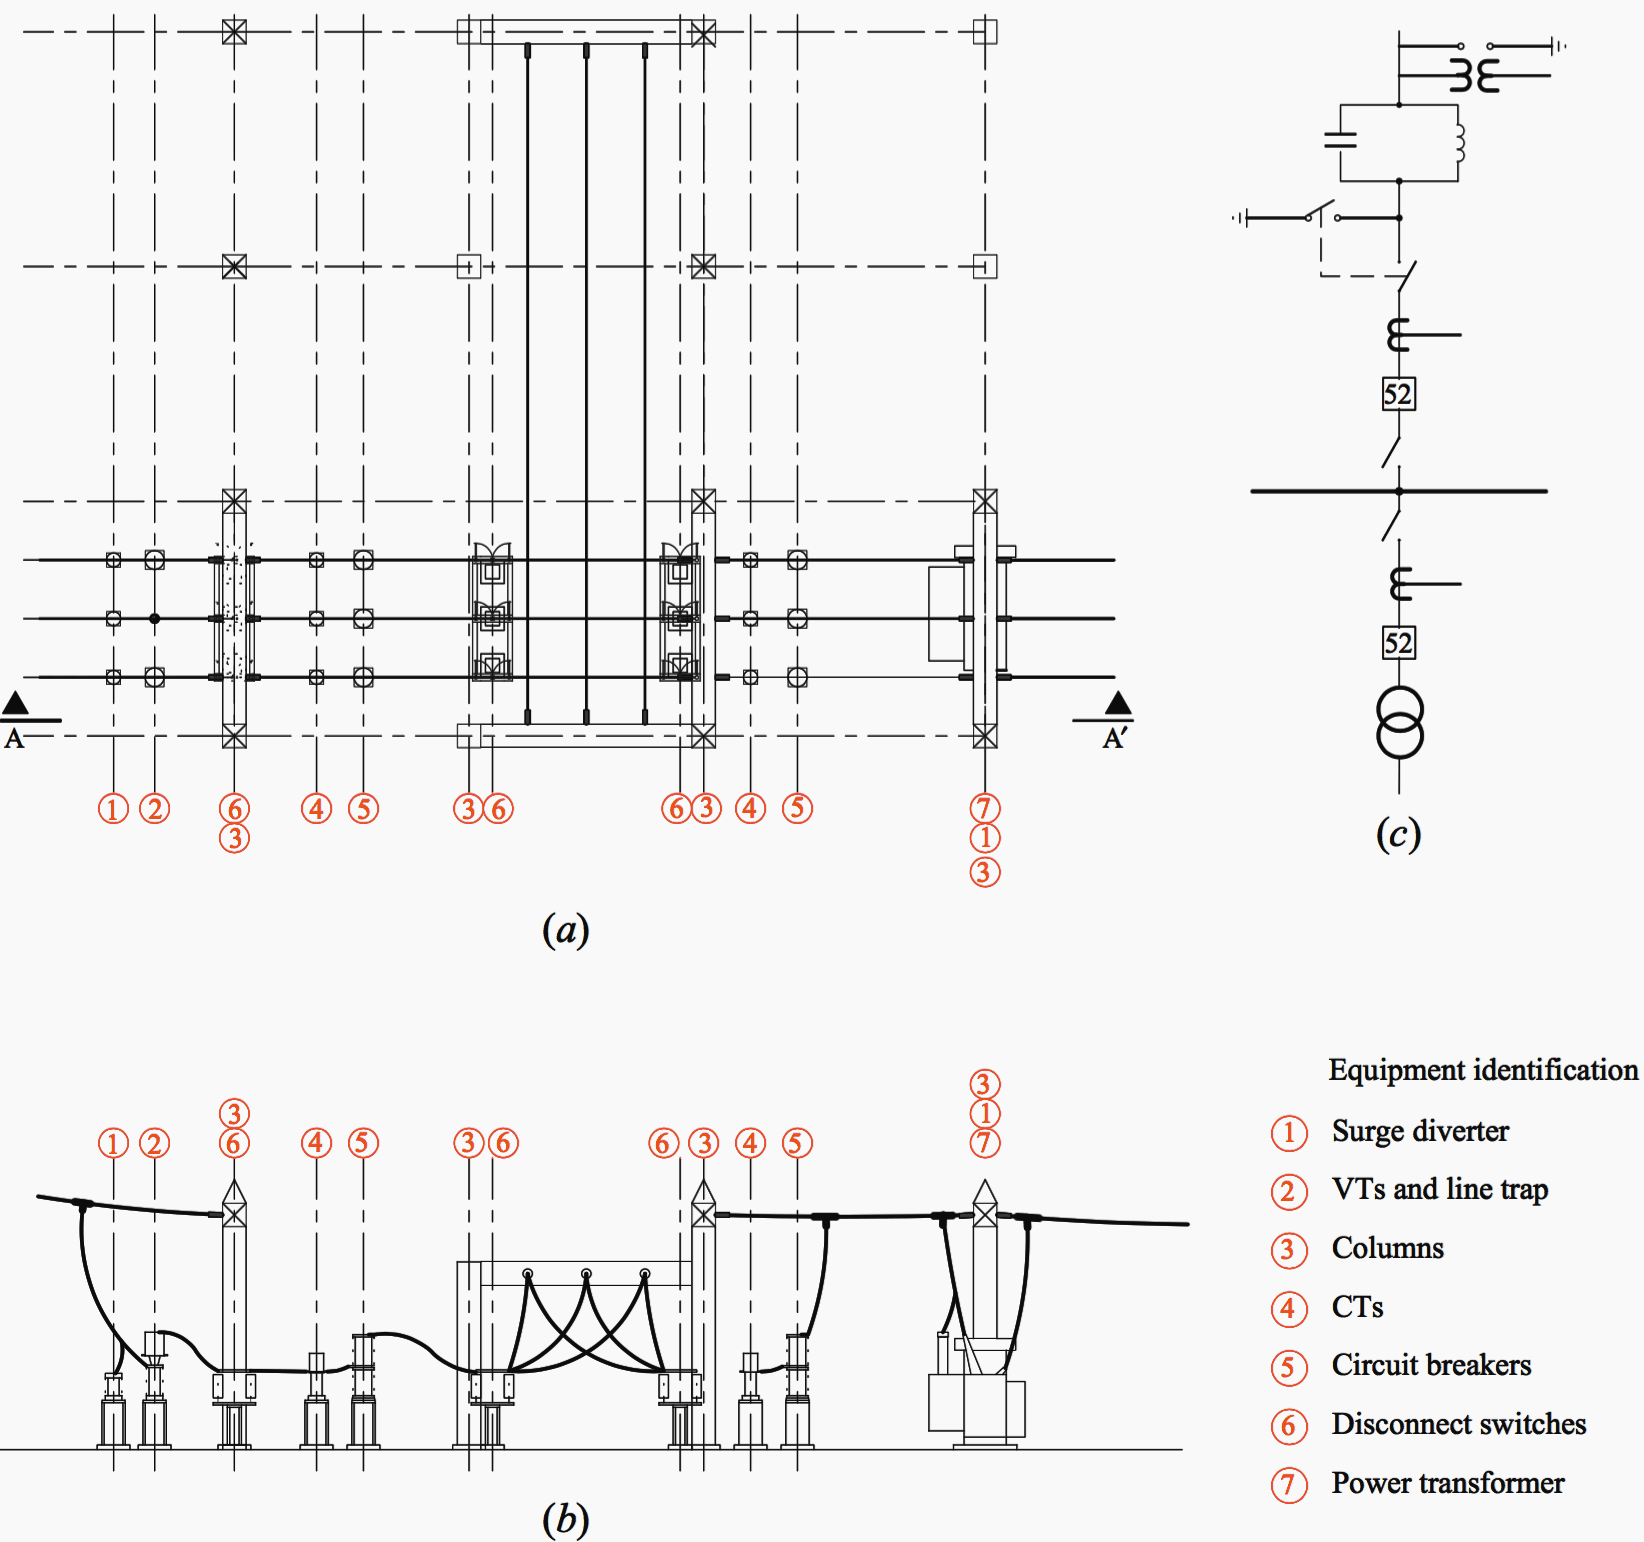 7 design diagrams that HV substation engineer MUST